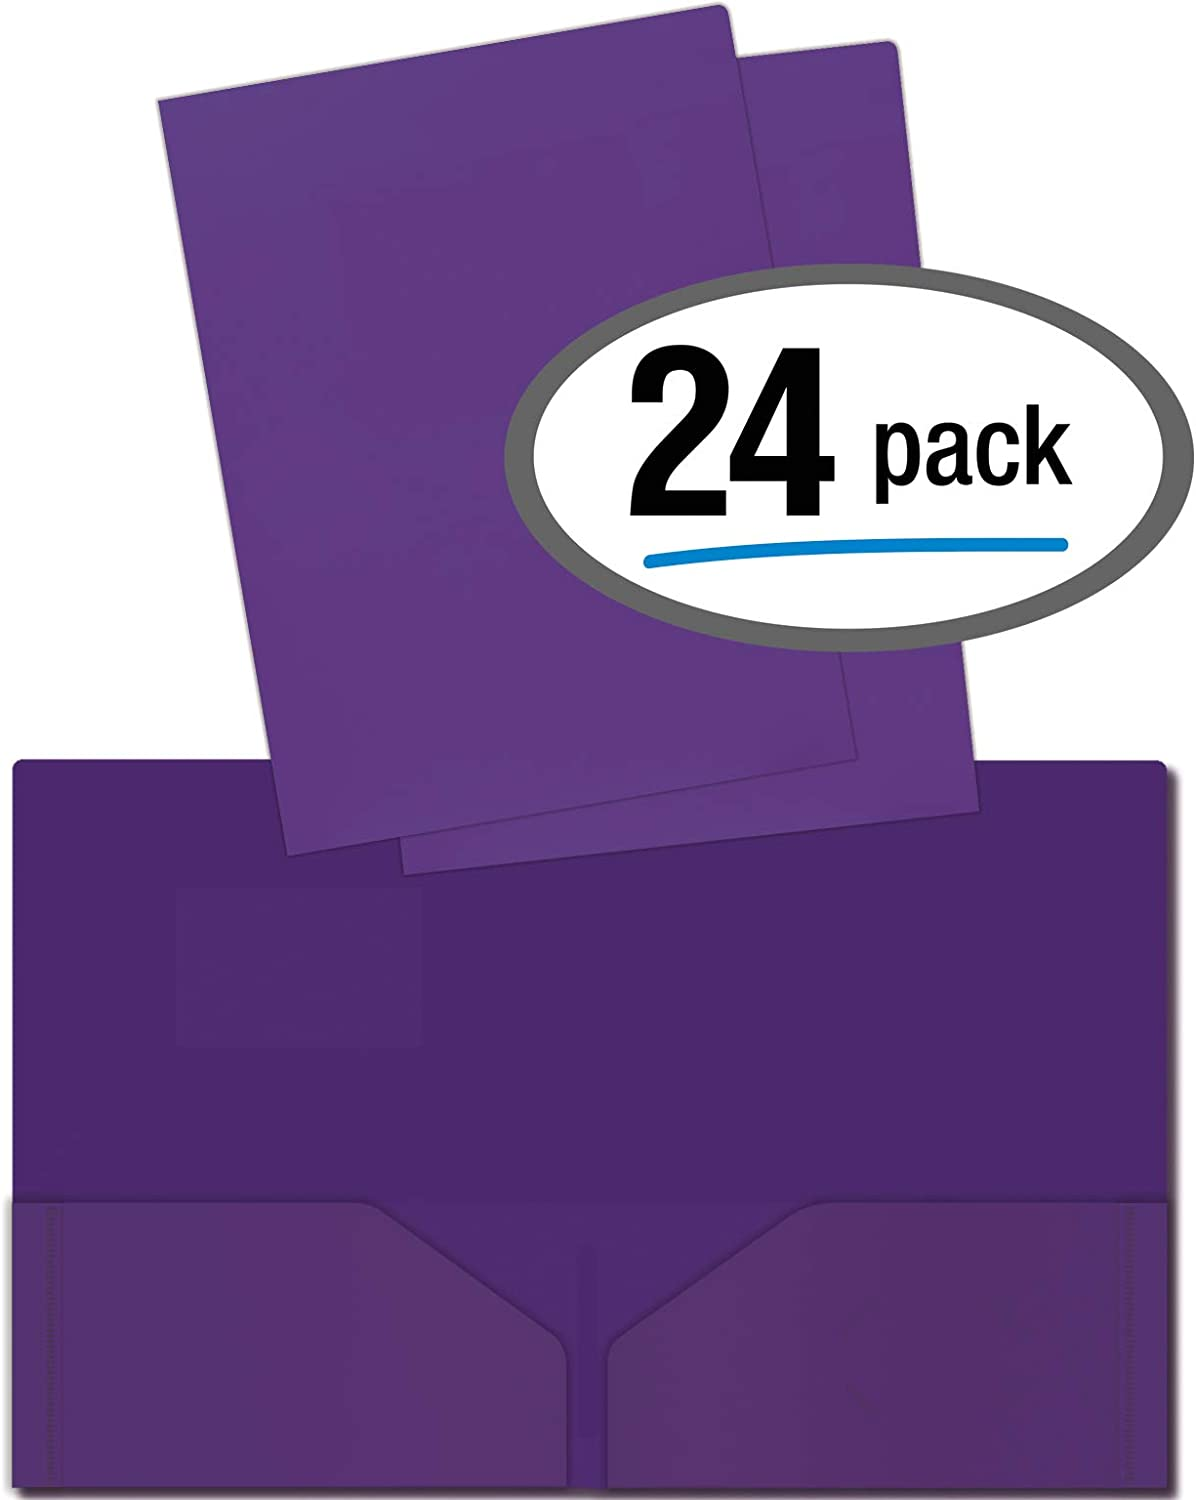 Heavyweight Plastic 2 Pocket Portfolio Folder, Letter Size Poly Folders by Better Office Products, 24 Pack (Purple)